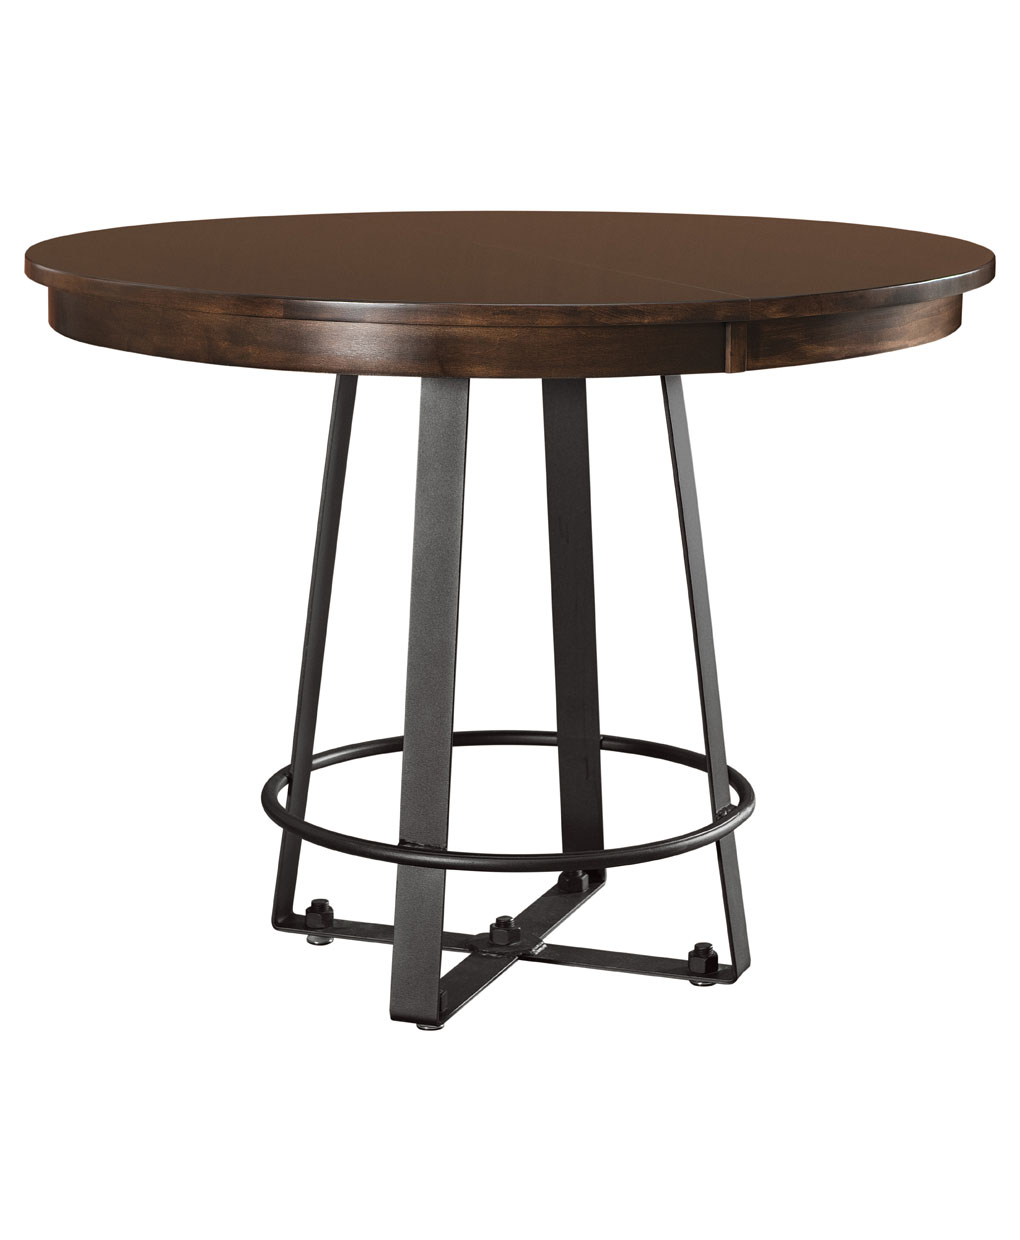 Iron craft pub table amish direct furniture iron craft pub table watchthetrailerfo